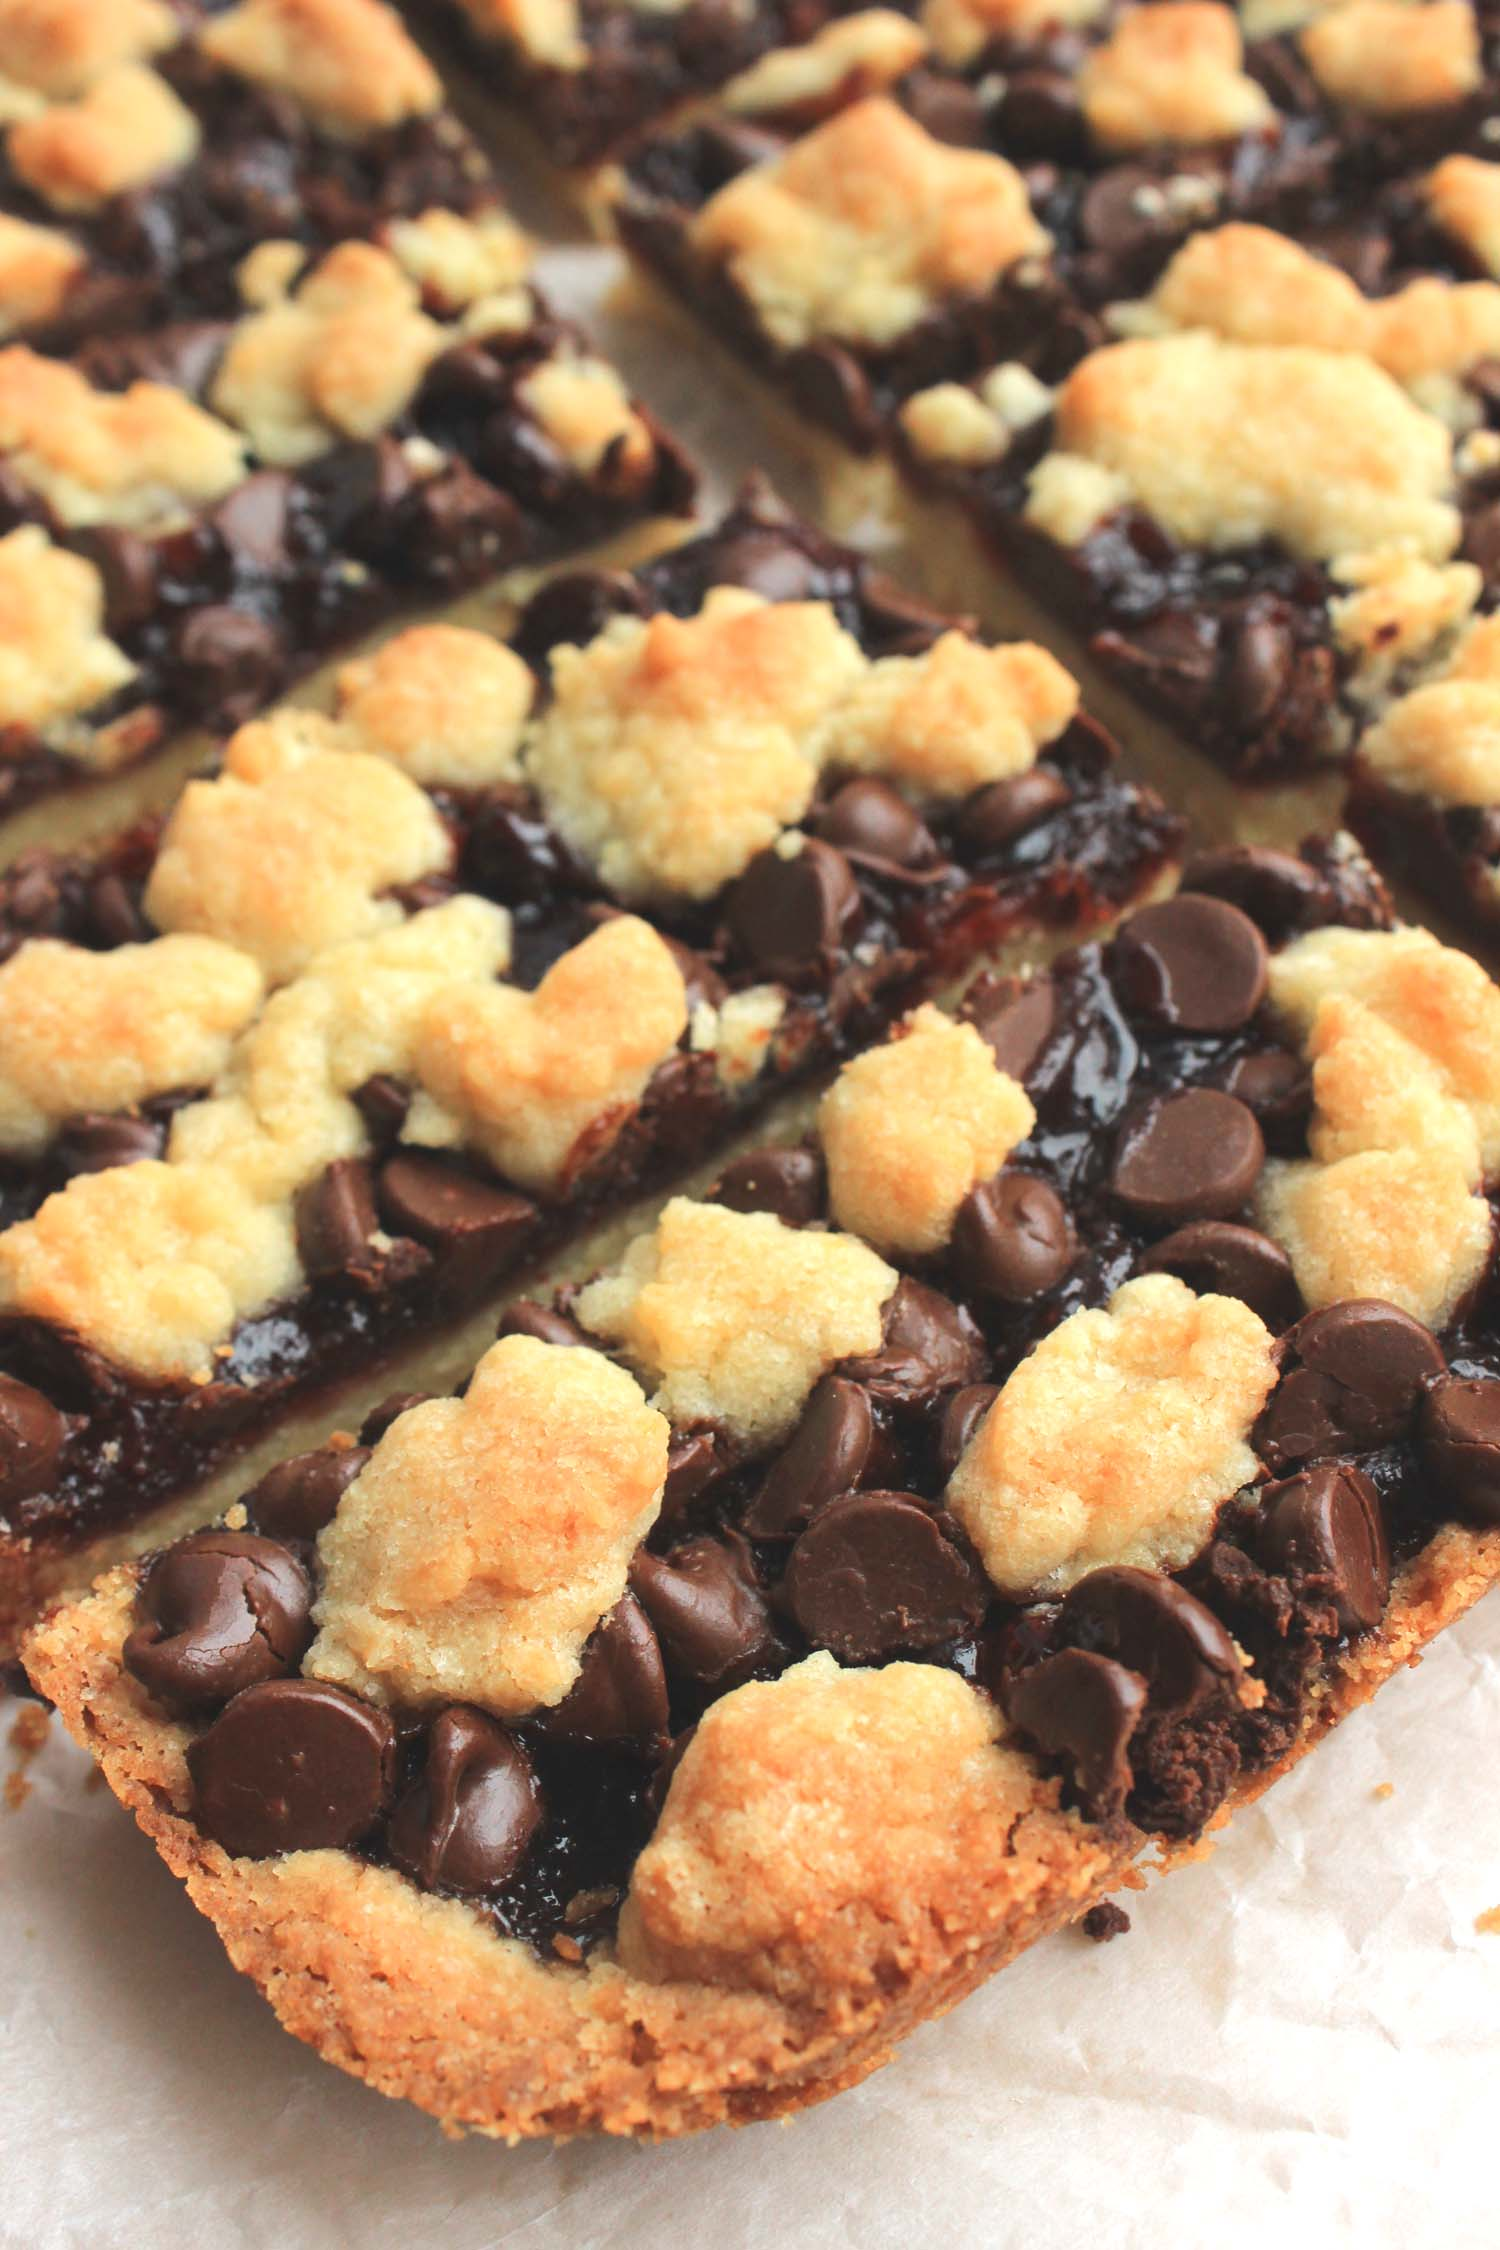 Black Forest Crumble Bars | Image: Laura Messersmith